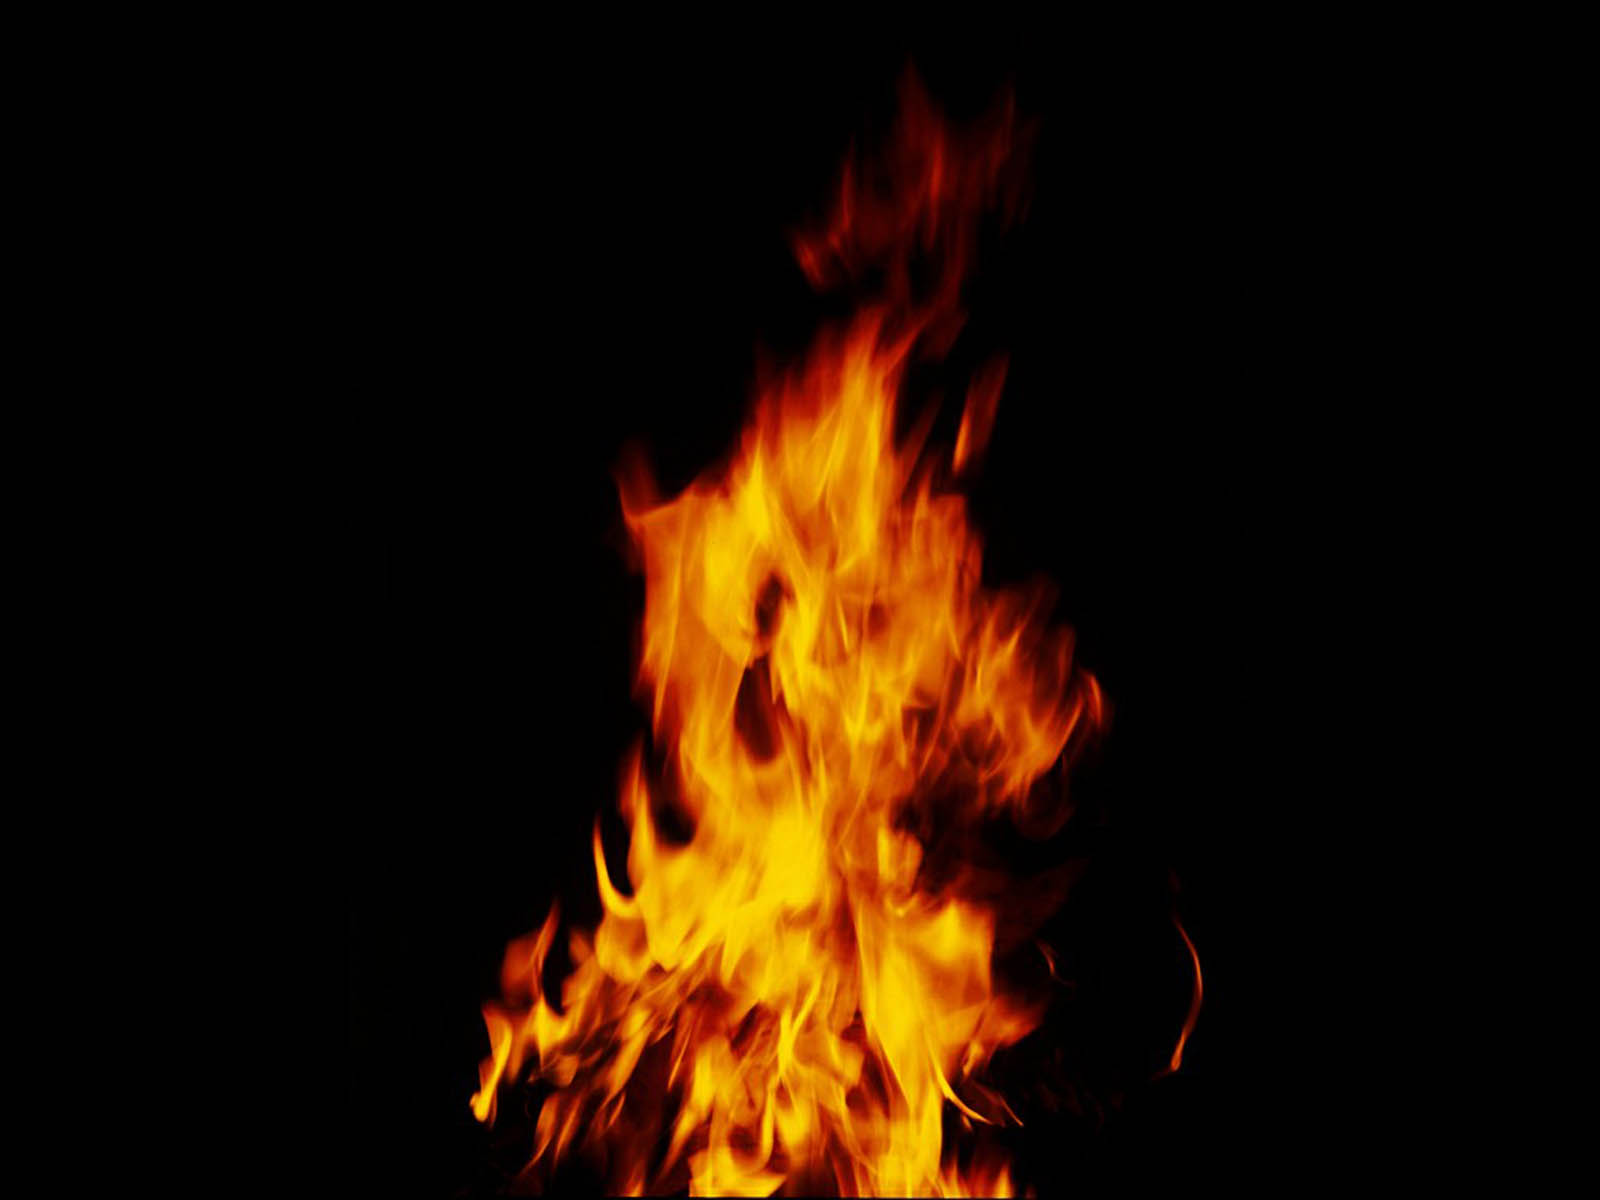 hd wallpapers desktop fire - photo #14